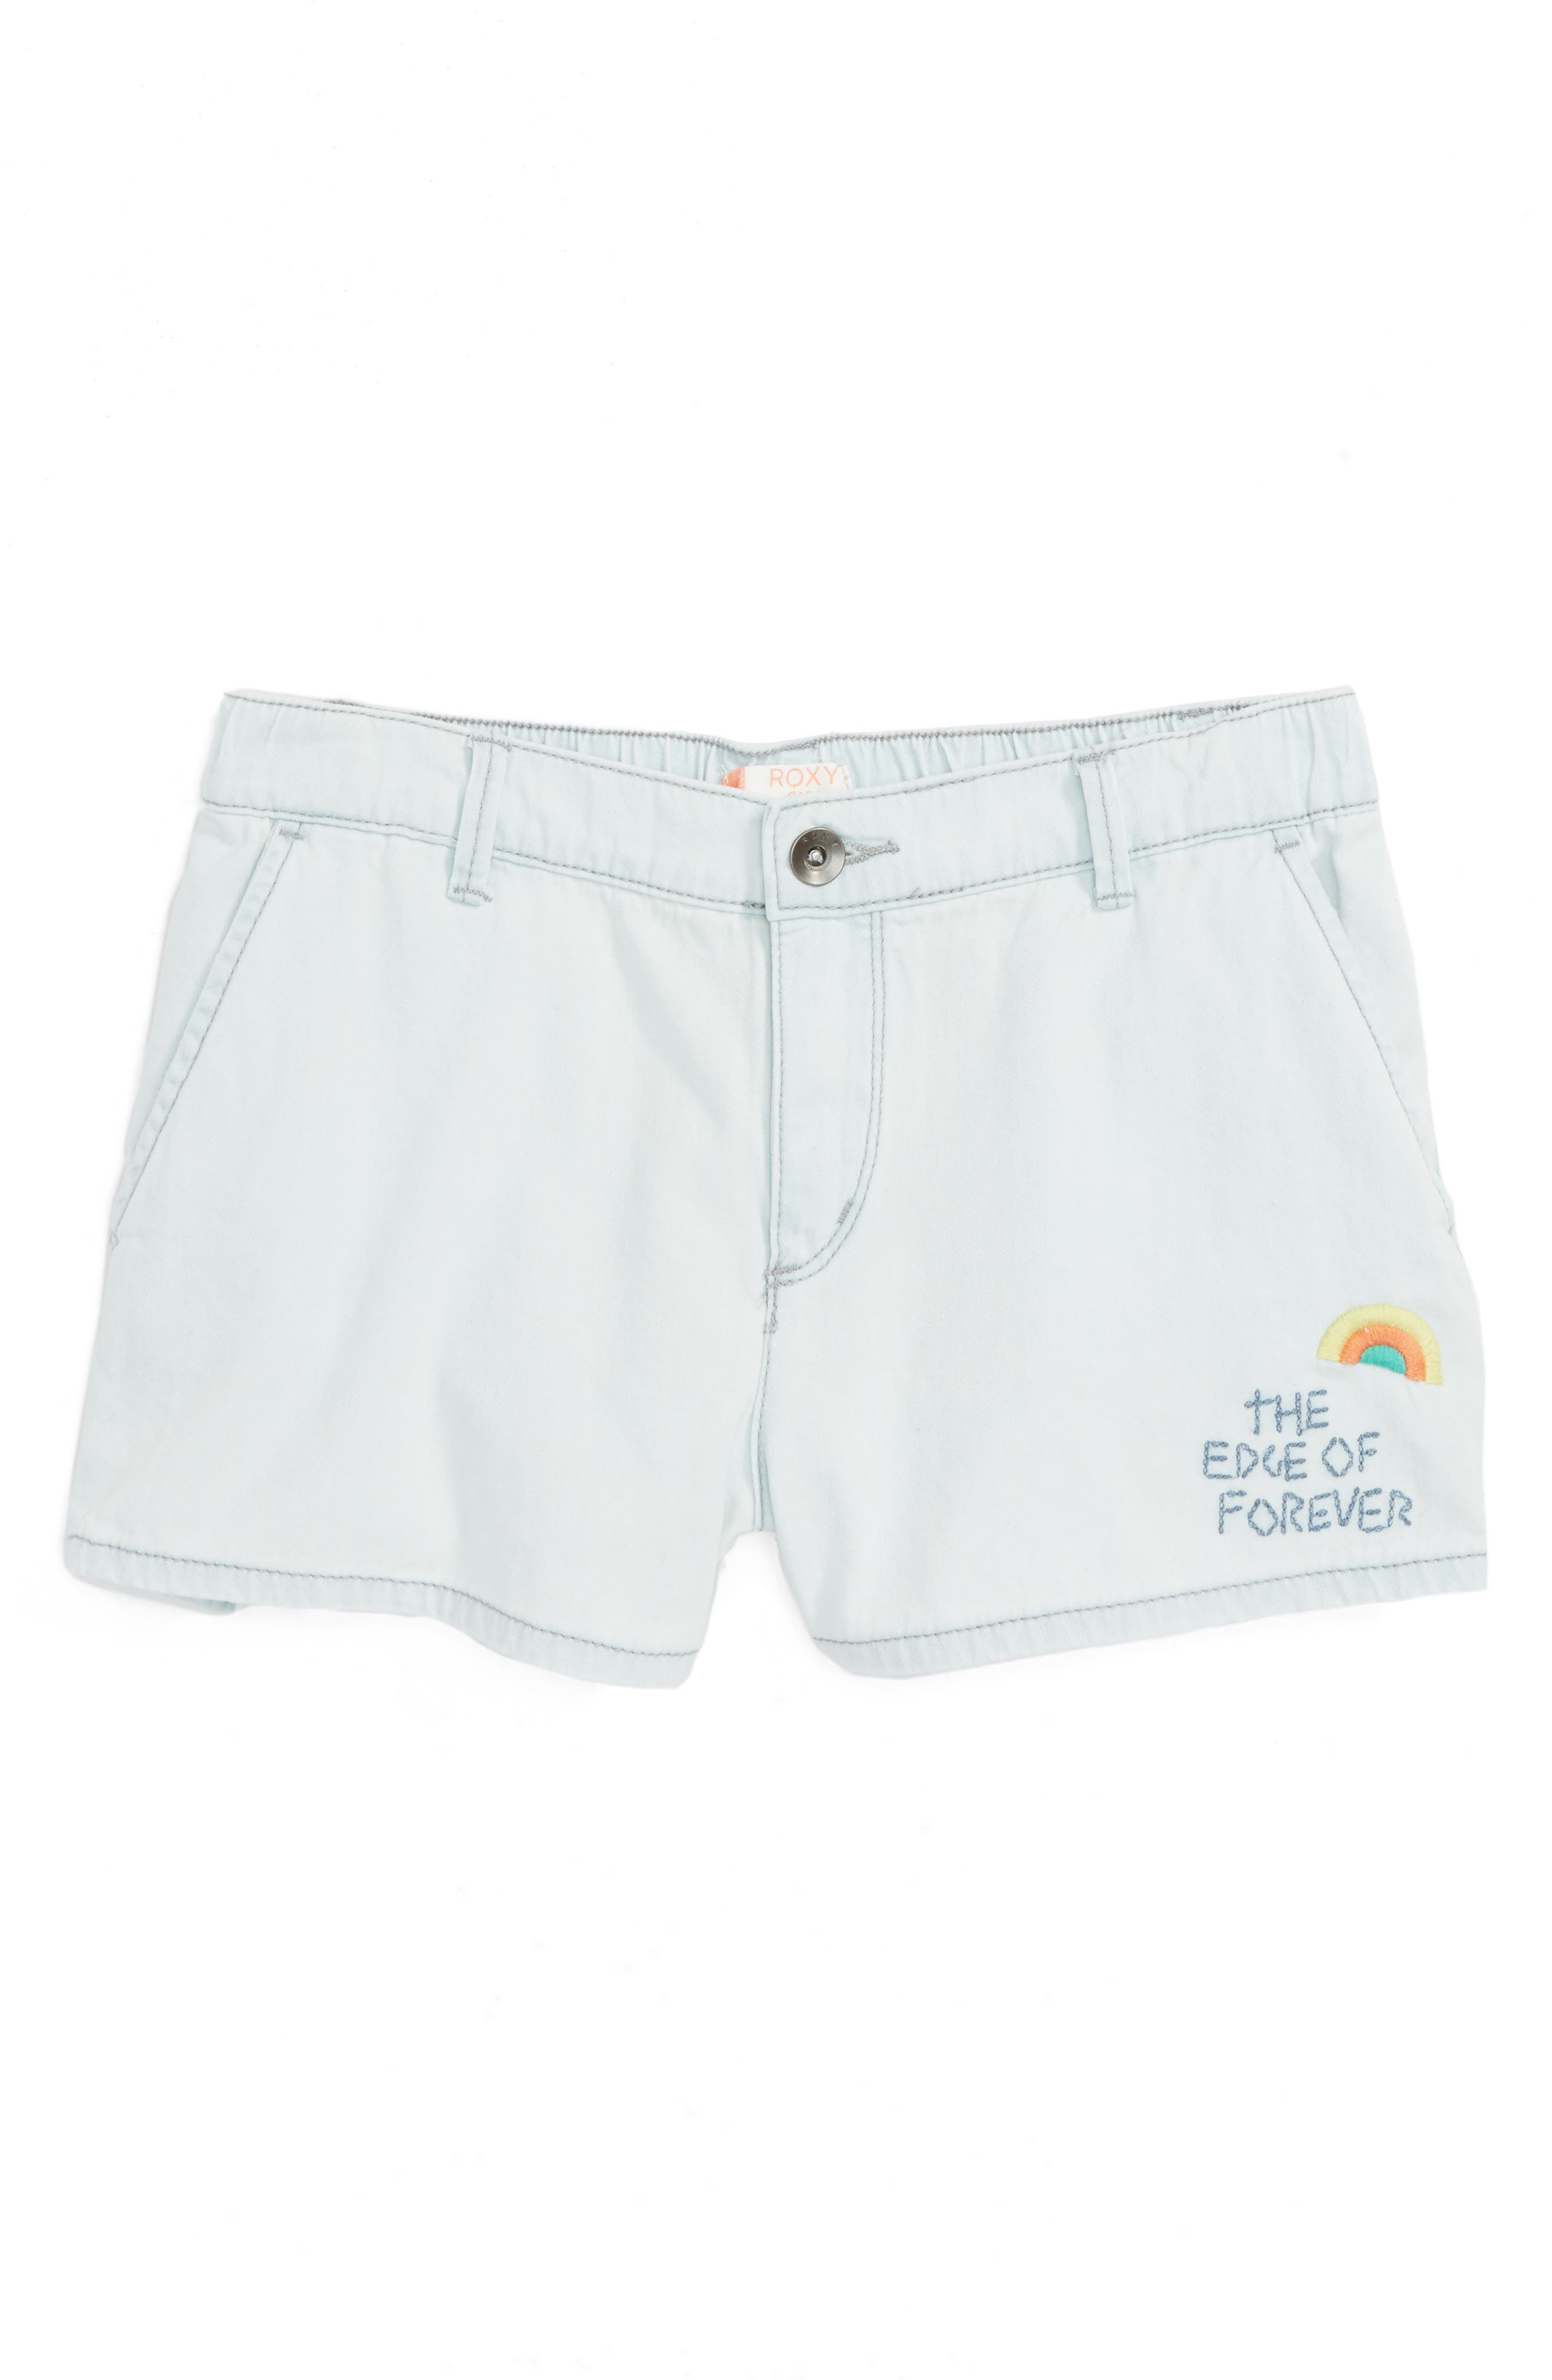 West Coast And U - Edge of Forever Rainbow Shorts,                         Main,                         color, Bleached Blue